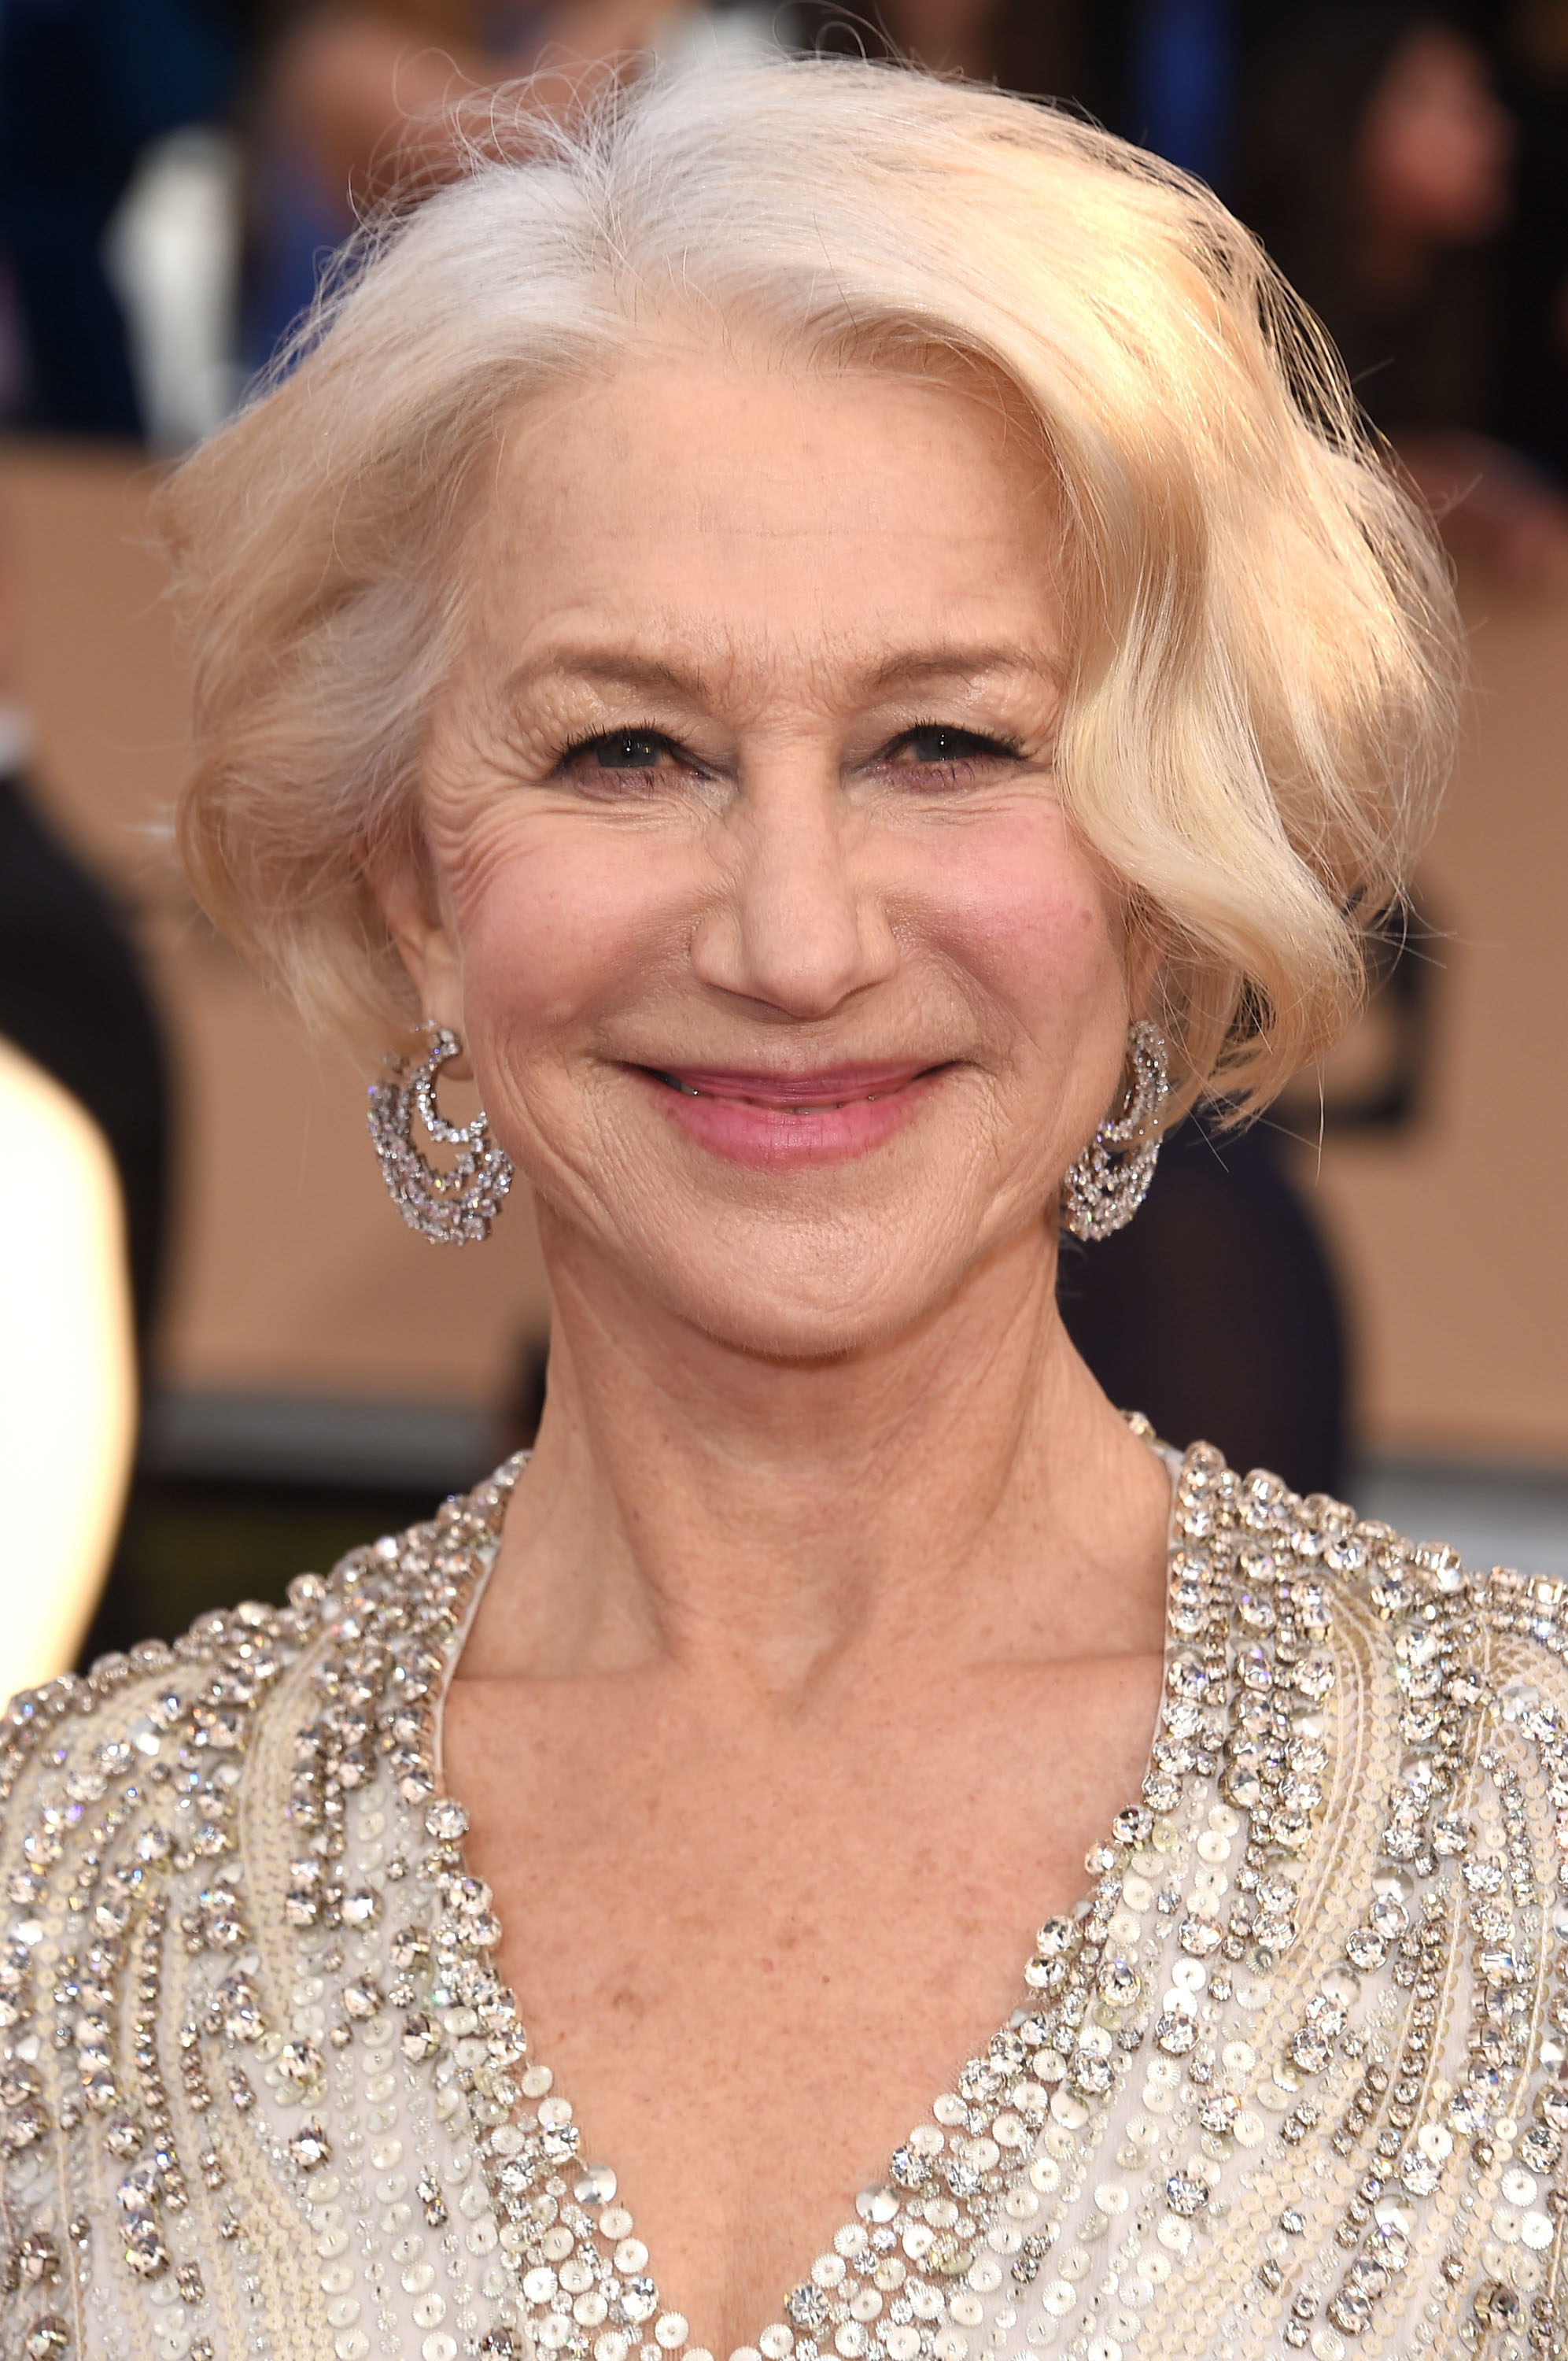 Helen Mirren arrives at the 22nd Annual Screen Actors Guild Awards at The Shrine Auditorium on January 30, 2016 in Los Angeles, California.